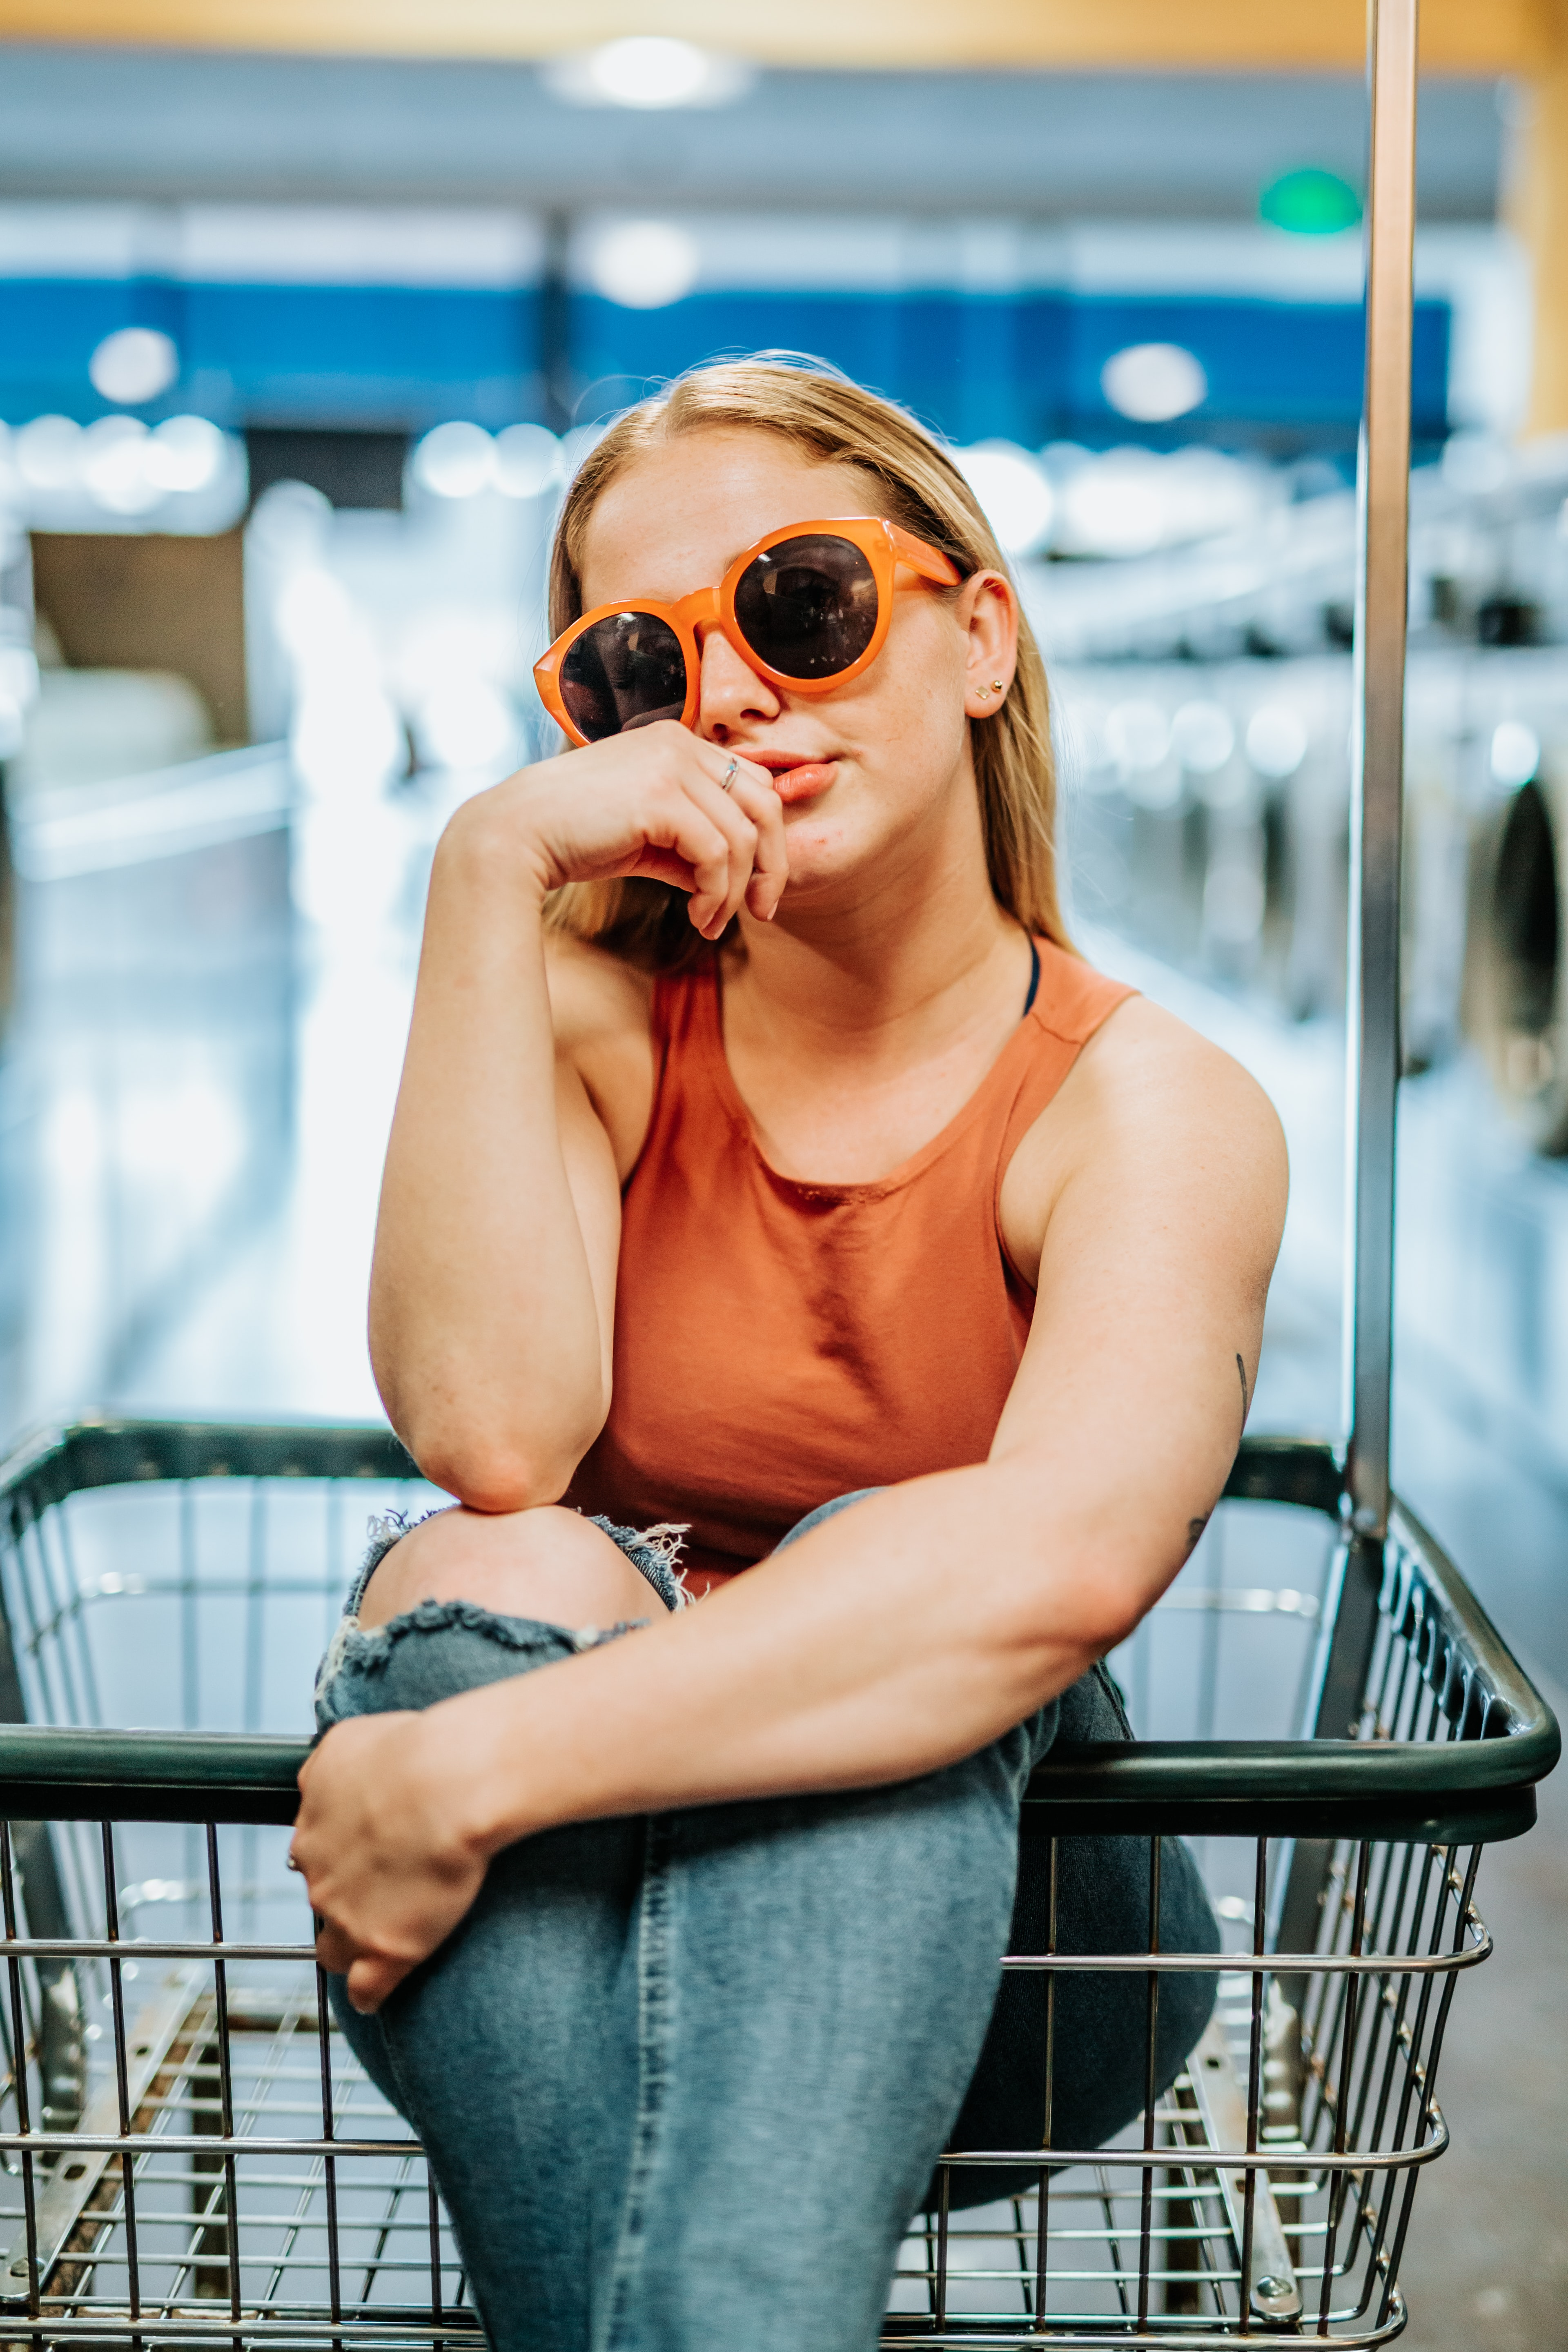 woman wearing brown tank top and jeans sitting in shopping cart